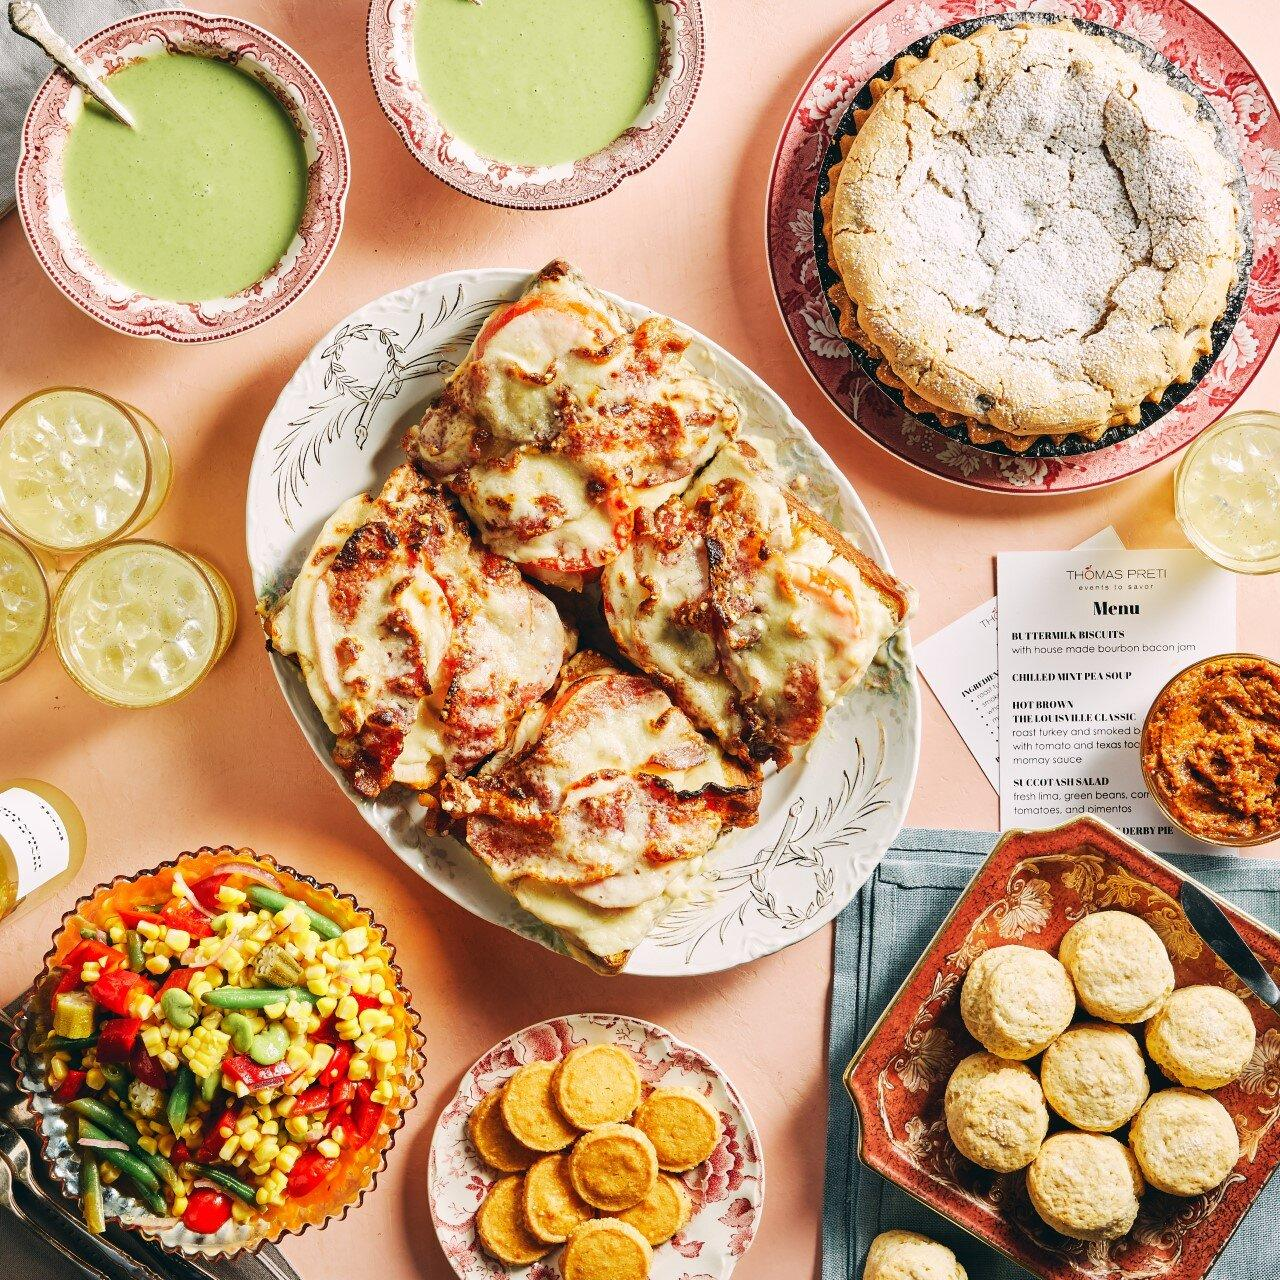 Amazing Prepared Derby Dinners To Order Online From Commander S Palace Sunrise Biscuit Kitchen And More